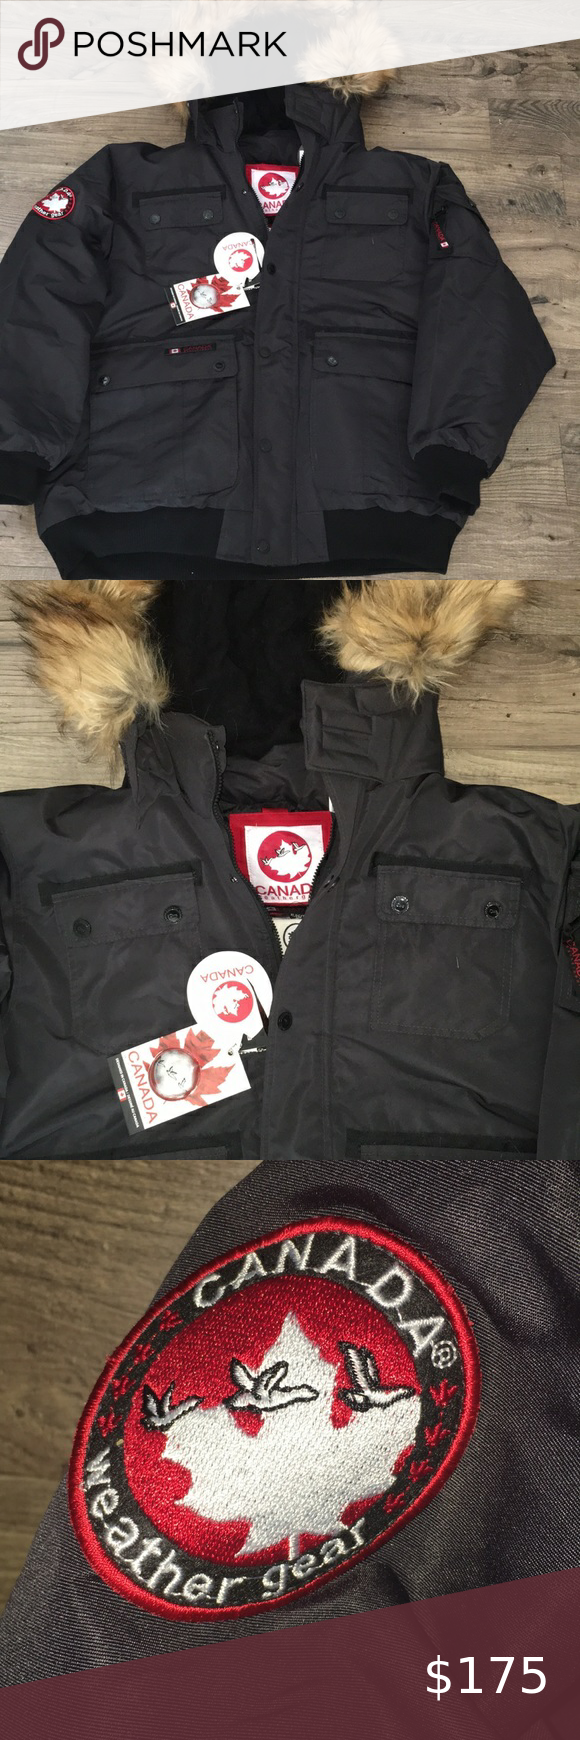 Canada Weather Gear Goose Winter Hooded Parka Xl Great For Winter Note Fake Fur Trim Zips Off See T Winter Jacket North Face Hooded Parka Snowboard Jacket Mens [ 1740 x 580 Pixel ]